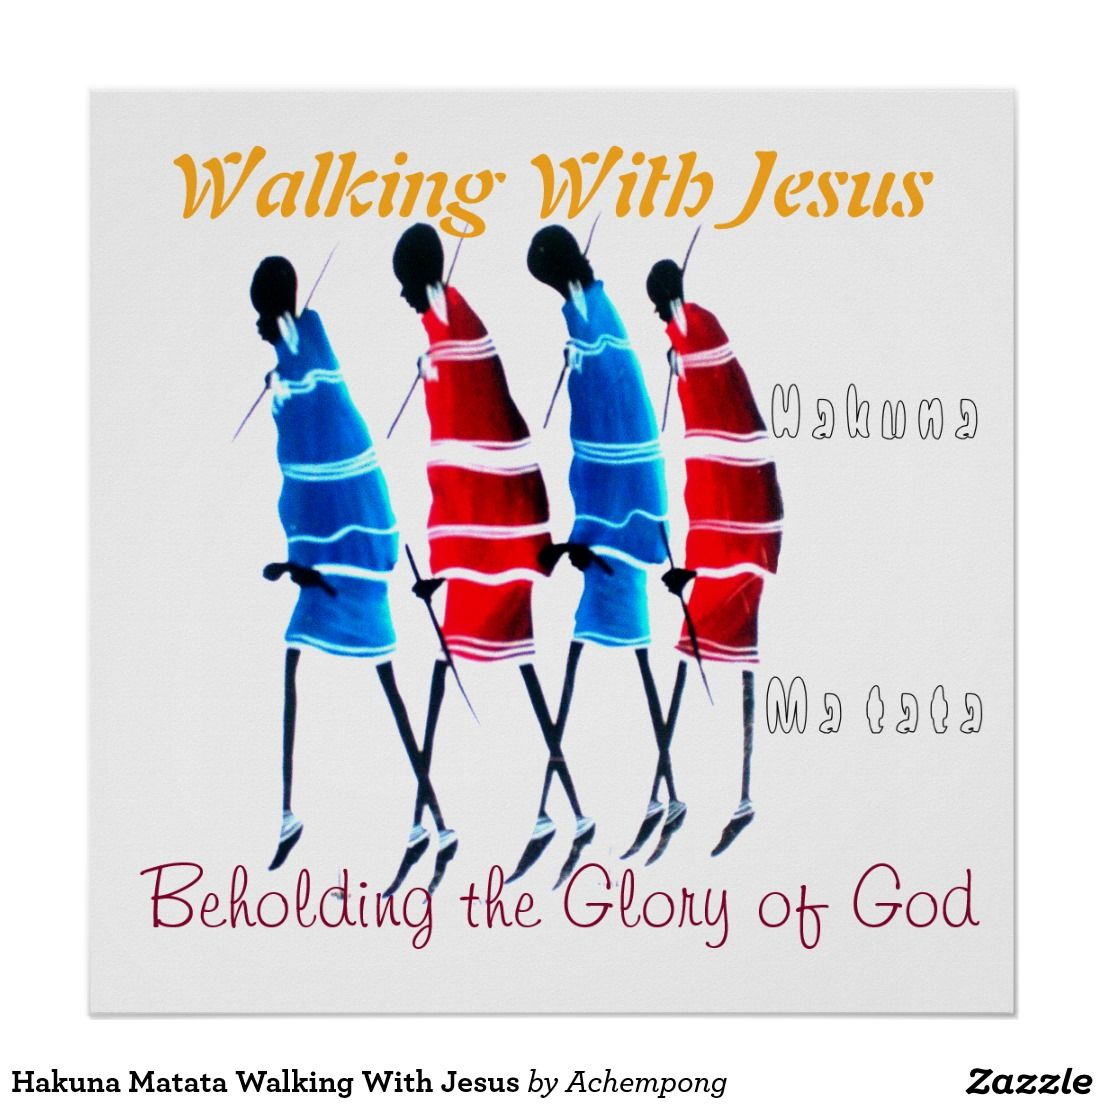 Hakuna Matata Walking With Jesus Poster #Beholding the #Glory of #God